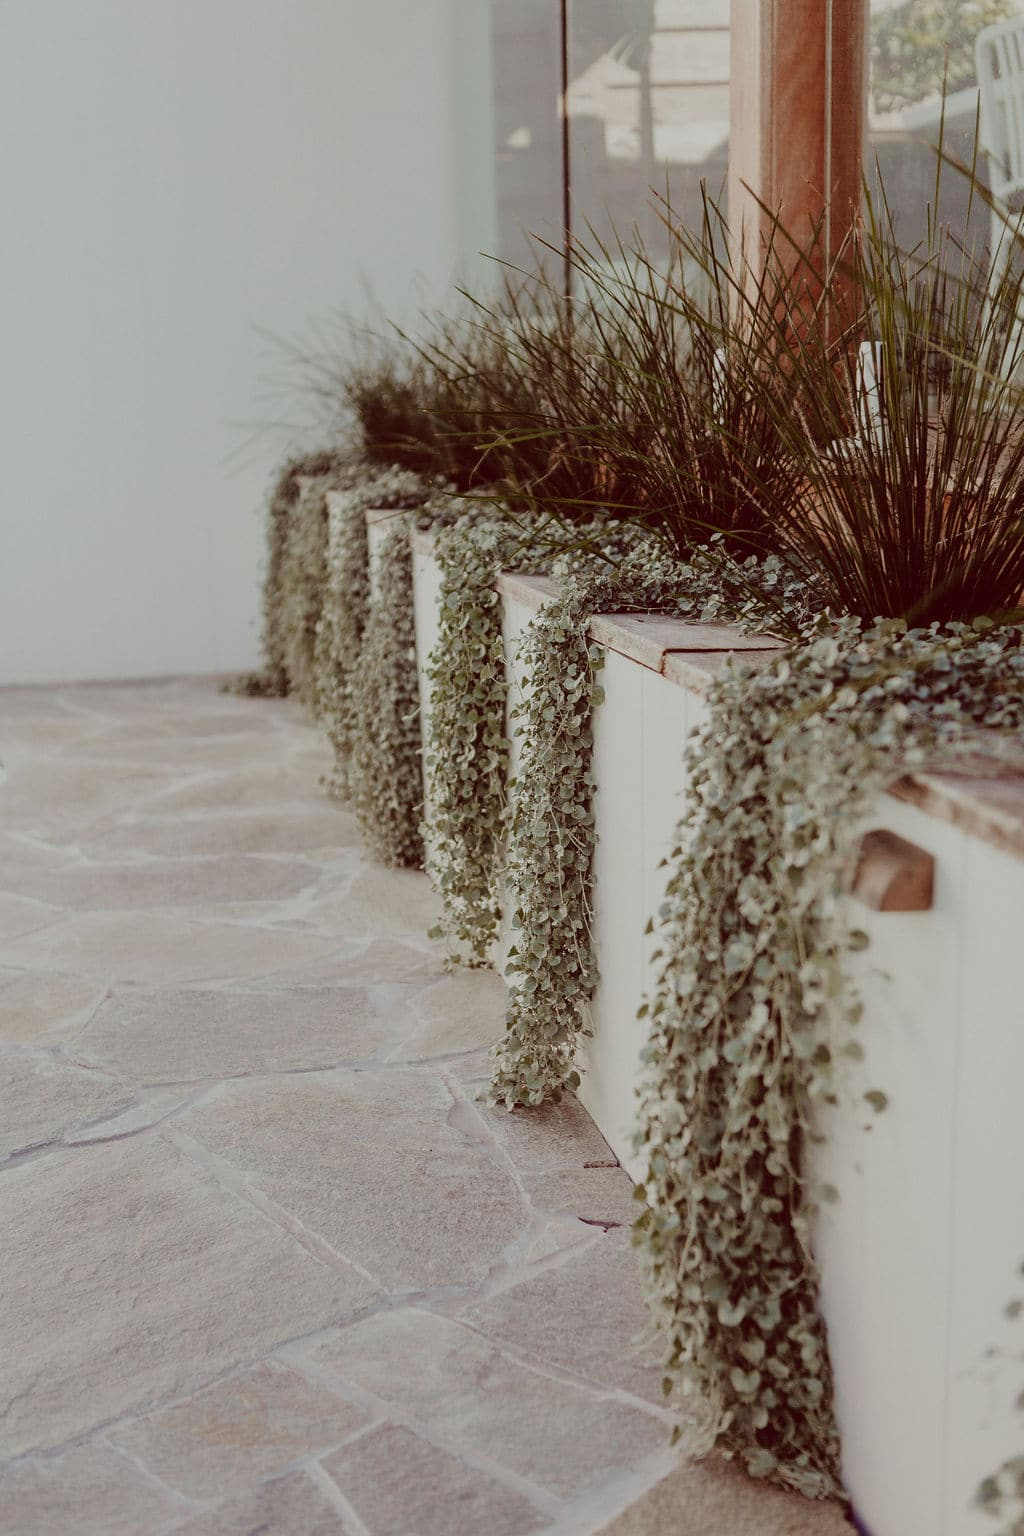 Photo of retaining wall with cascading creeper plant and crazy paving